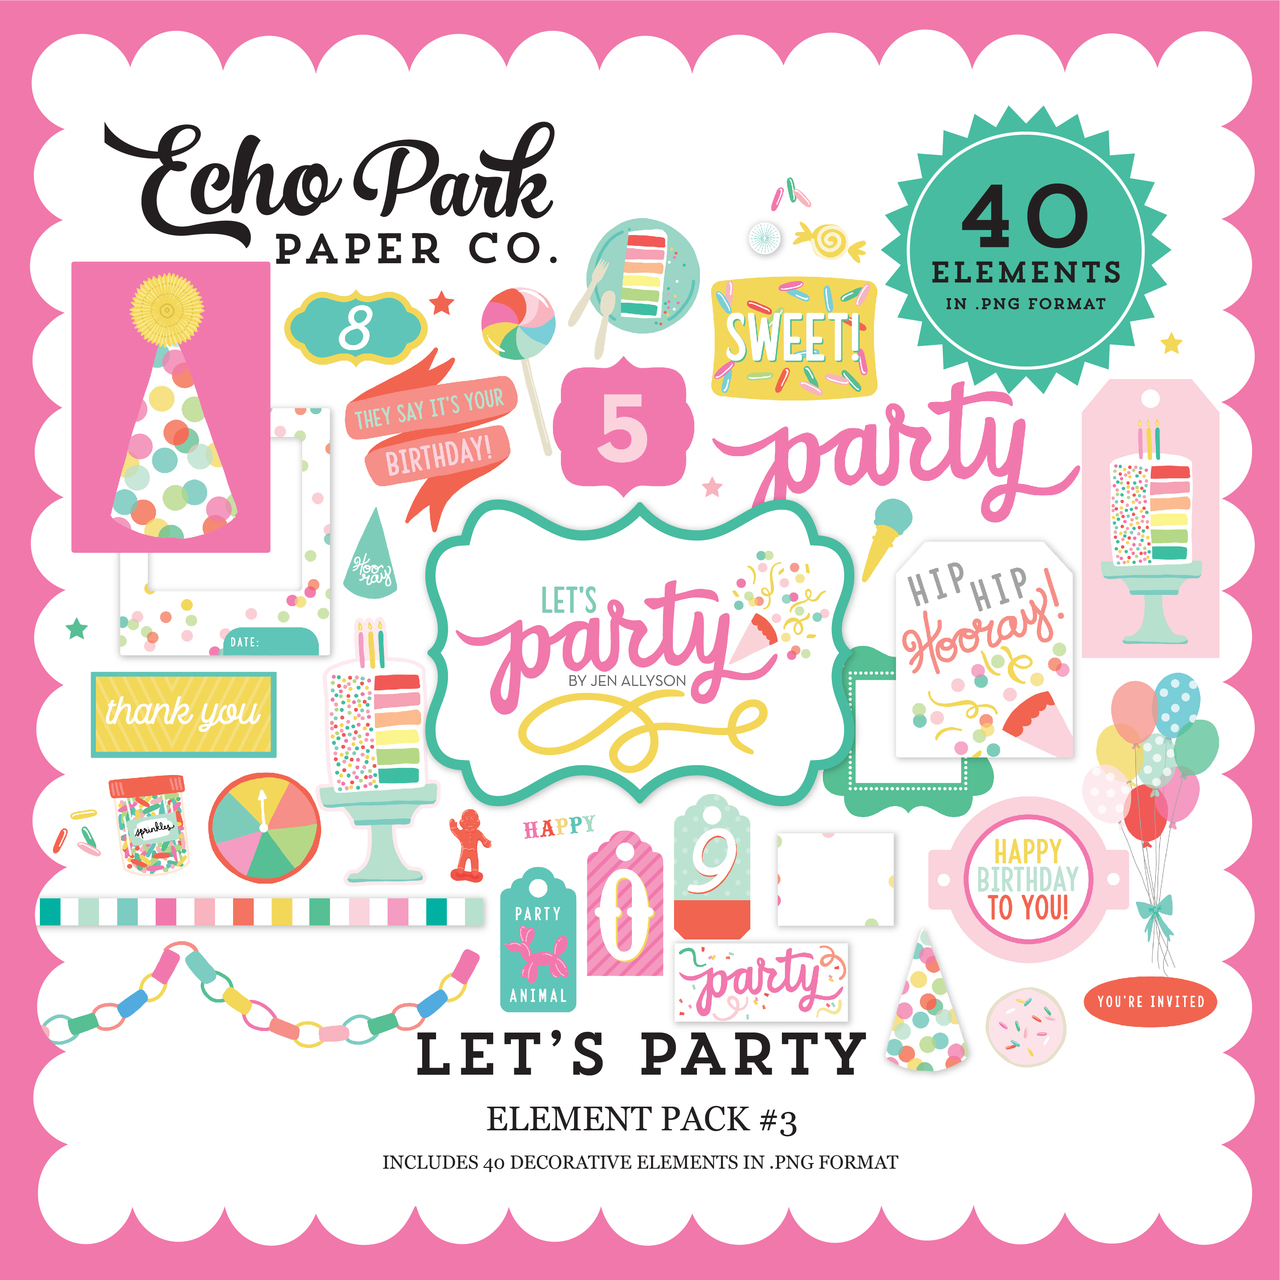 Let's Party Element Pack #3